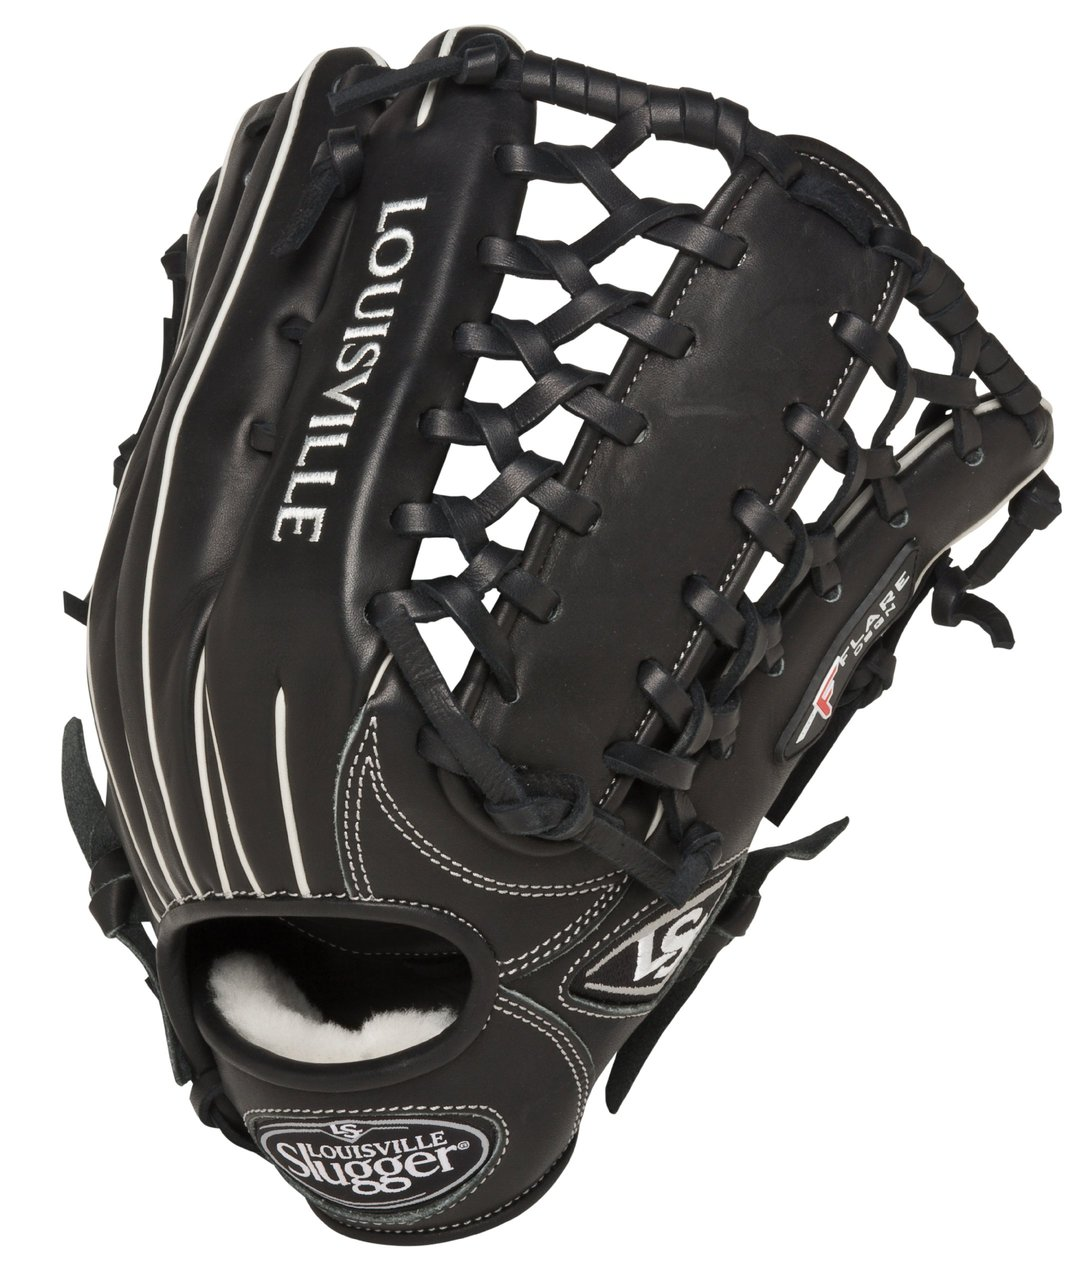 louisville-slugger-pro-flare-13-inch-outfield-baseball-glove-right-handed-throw FGPF14-BK130-Right Handed Throw Louisville New Louisville Slugger Pro Flare 13 inch Outfield Baseball Glove Right Handed